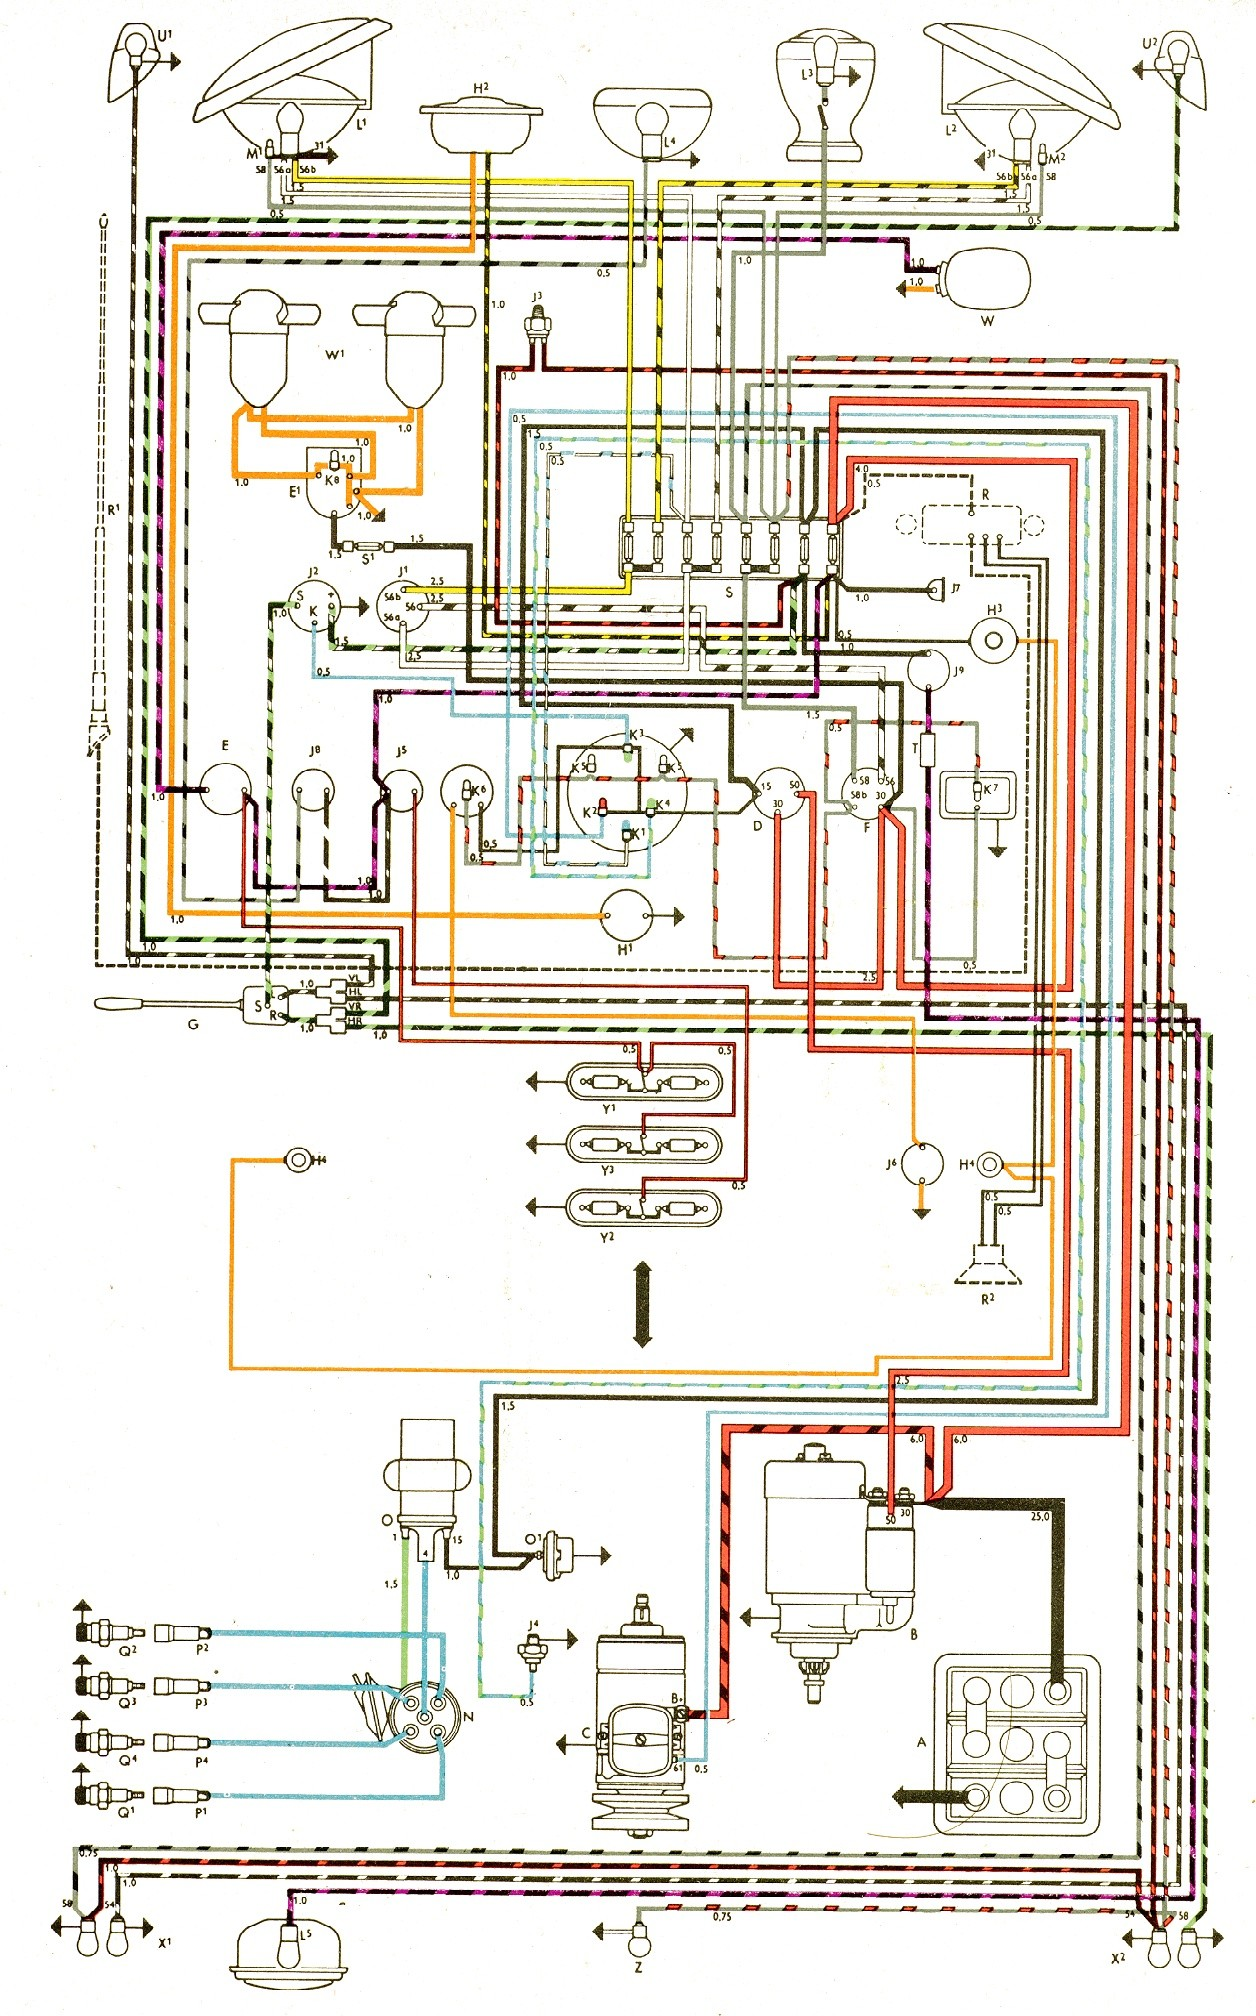 Vw Bus Engine Diagram With Wheelie Bar Automotive Wiring 1972 Library Rh 12 Mml Partners De Buggy